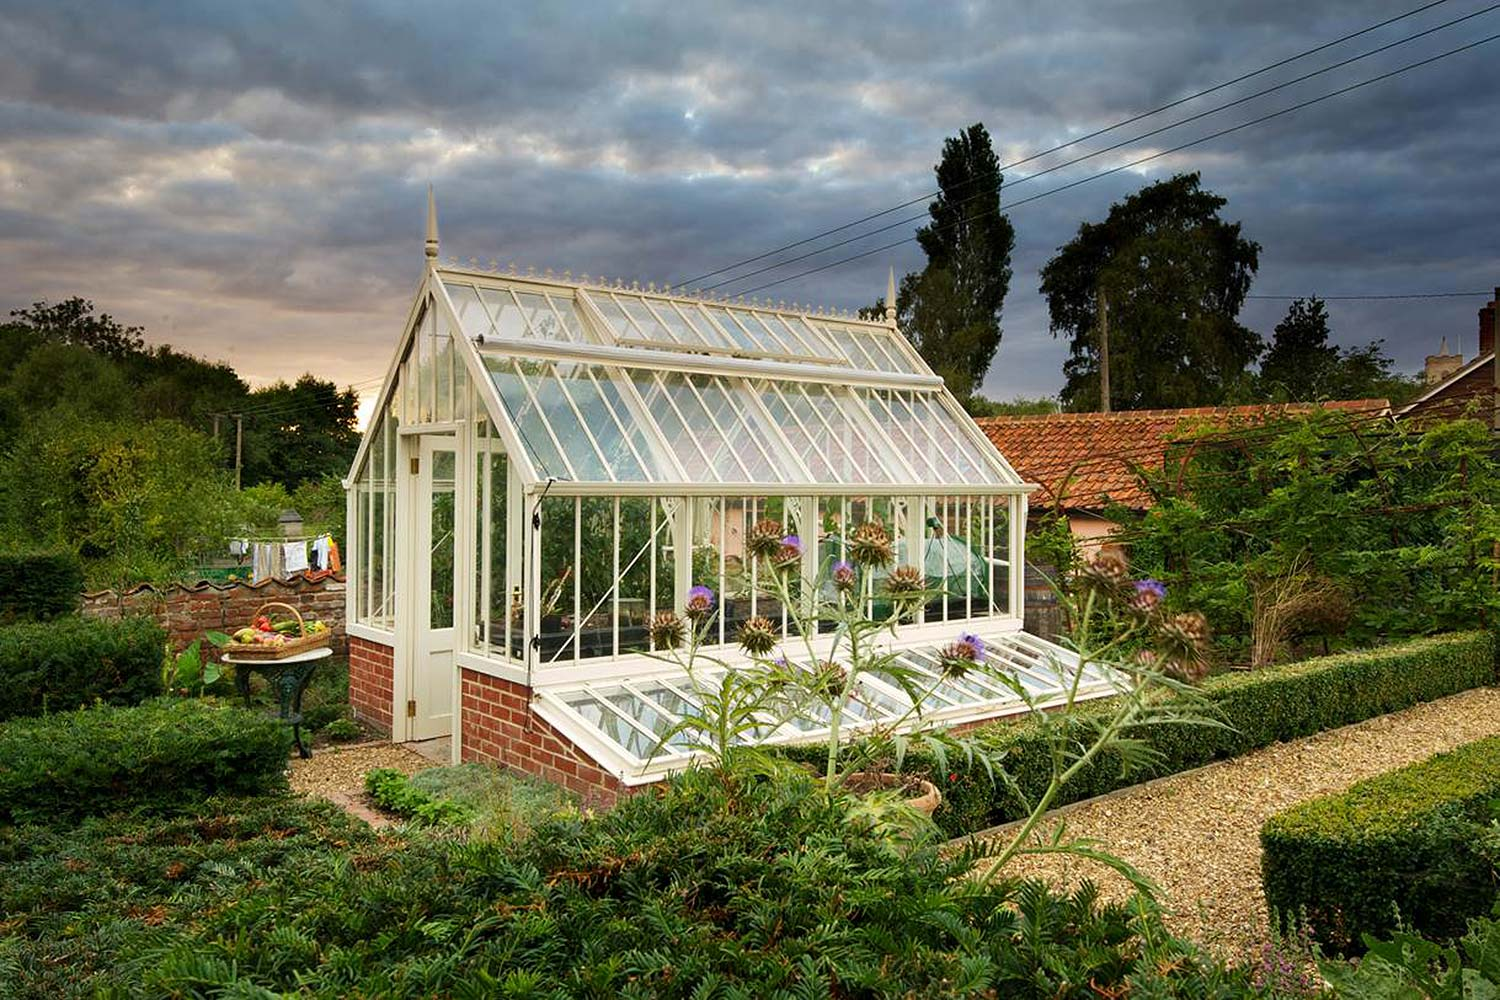 The Aiton Greenhouse from the Alitex Kew Greenhouse Collection